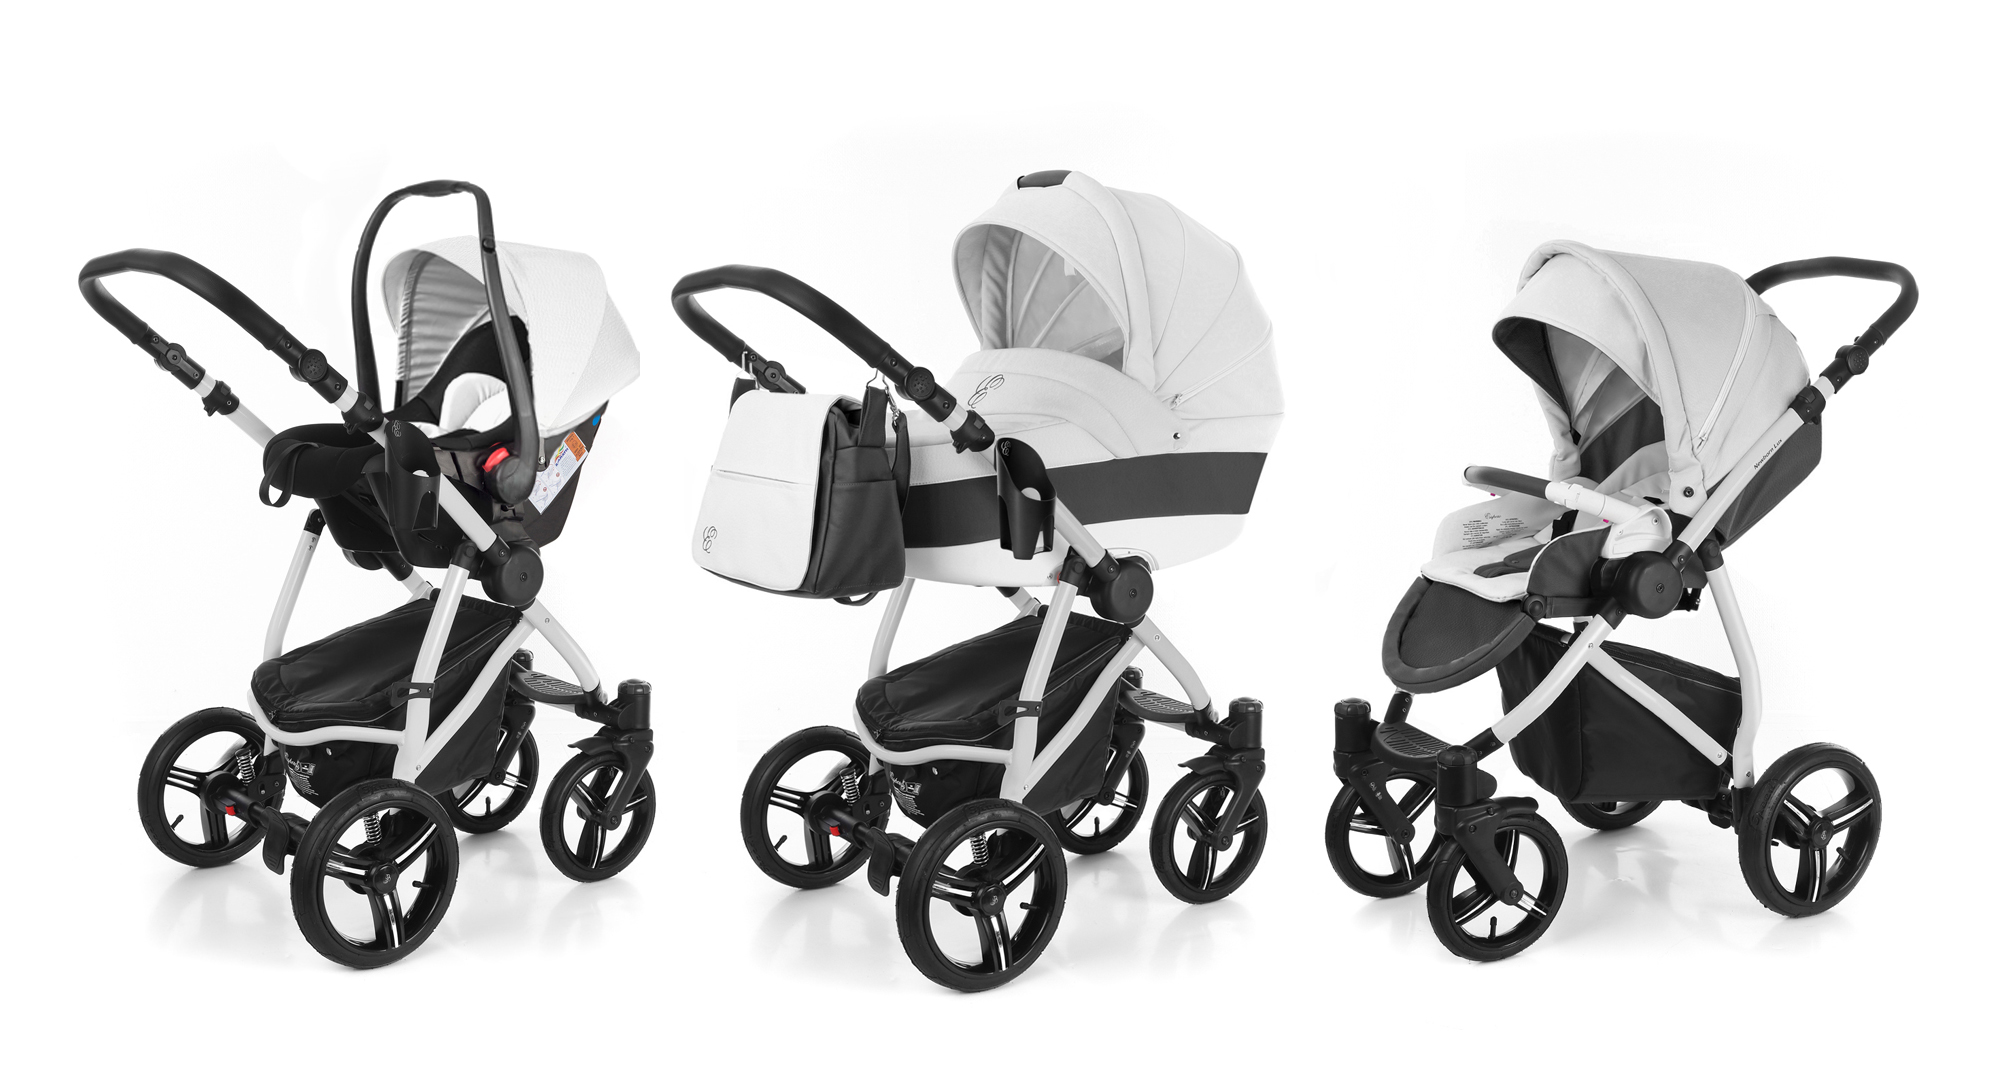 Коляска 3 в 1 Esspero Grand Newborn Lux (шасси Grey). Фото N2